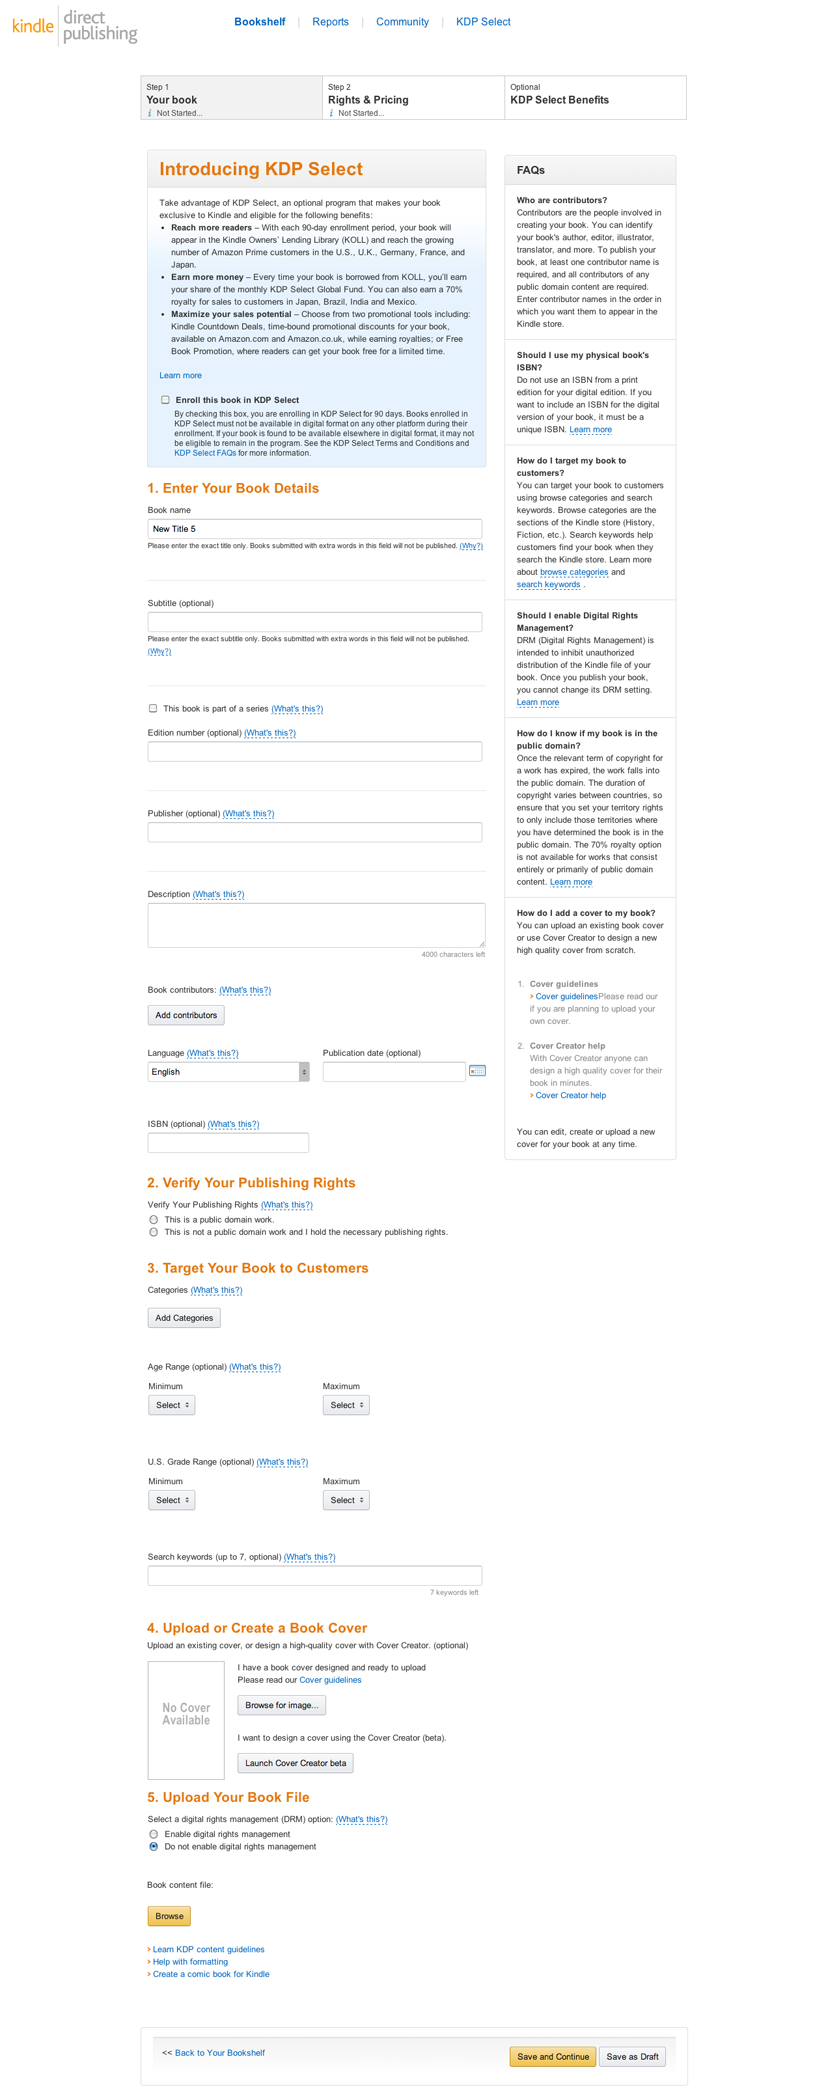 The KDP book publishing interface